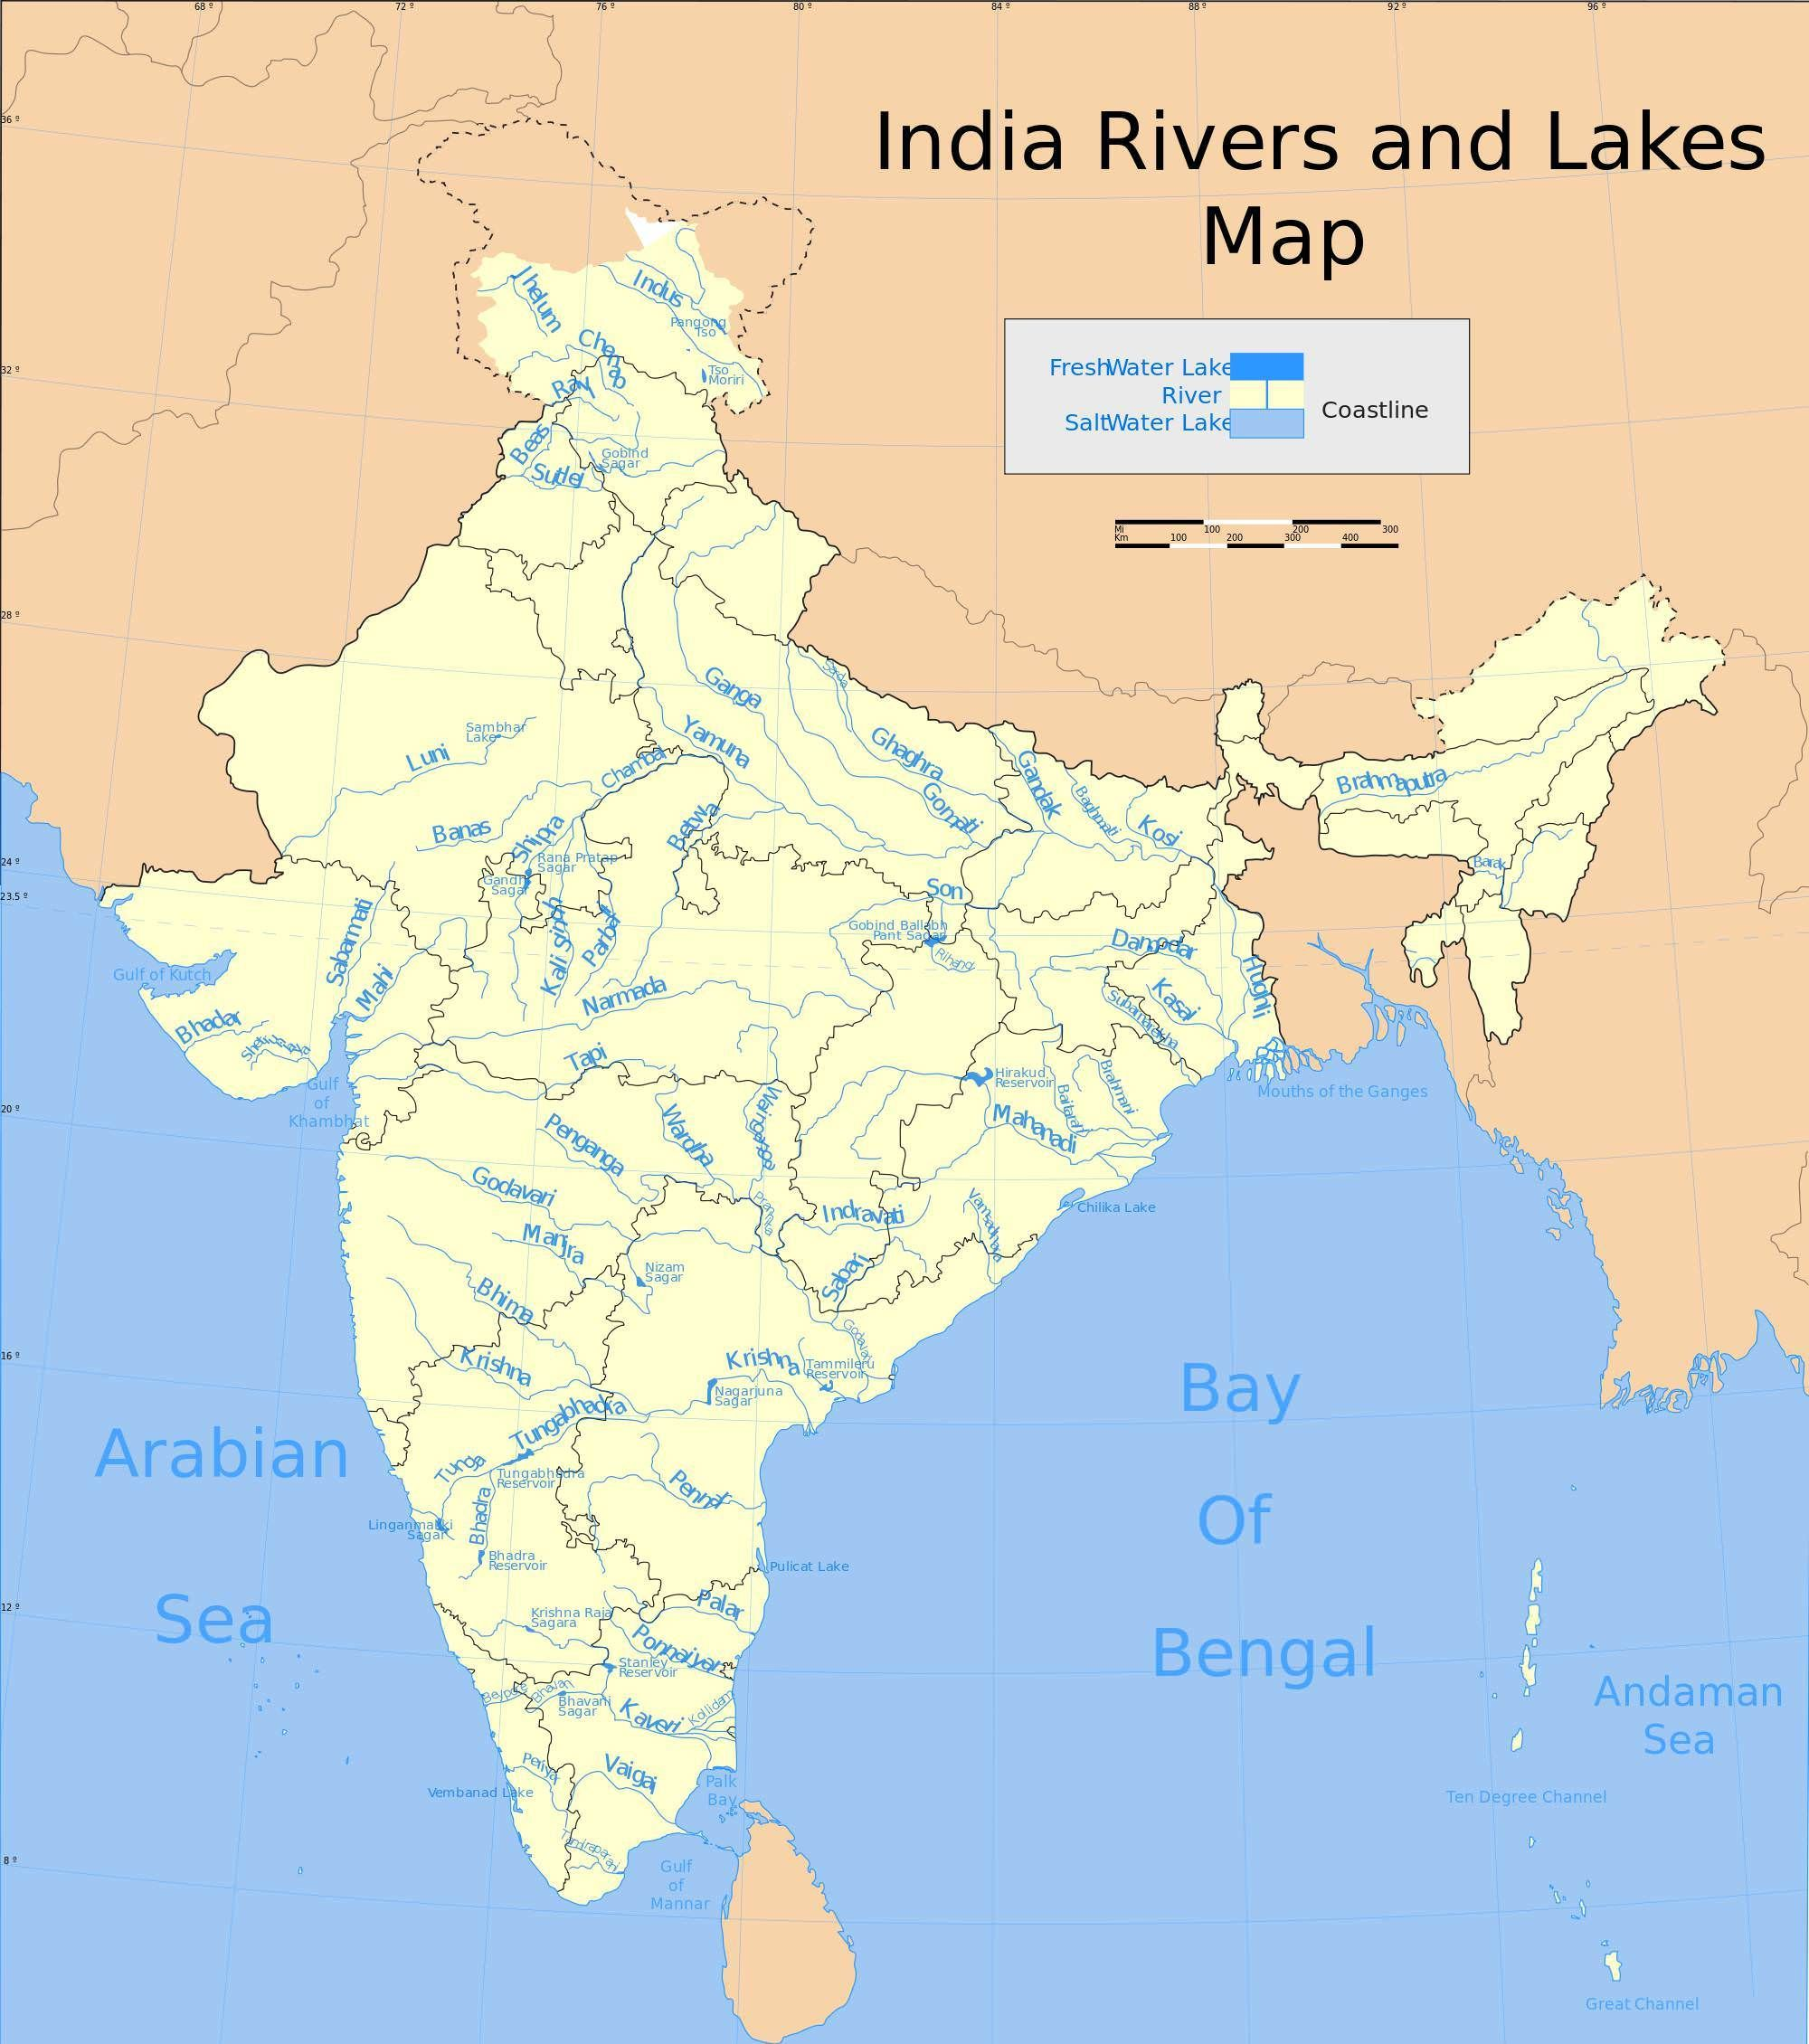 Indian Rivers And Lakes Indian River System Full Map Pinterest - River system map